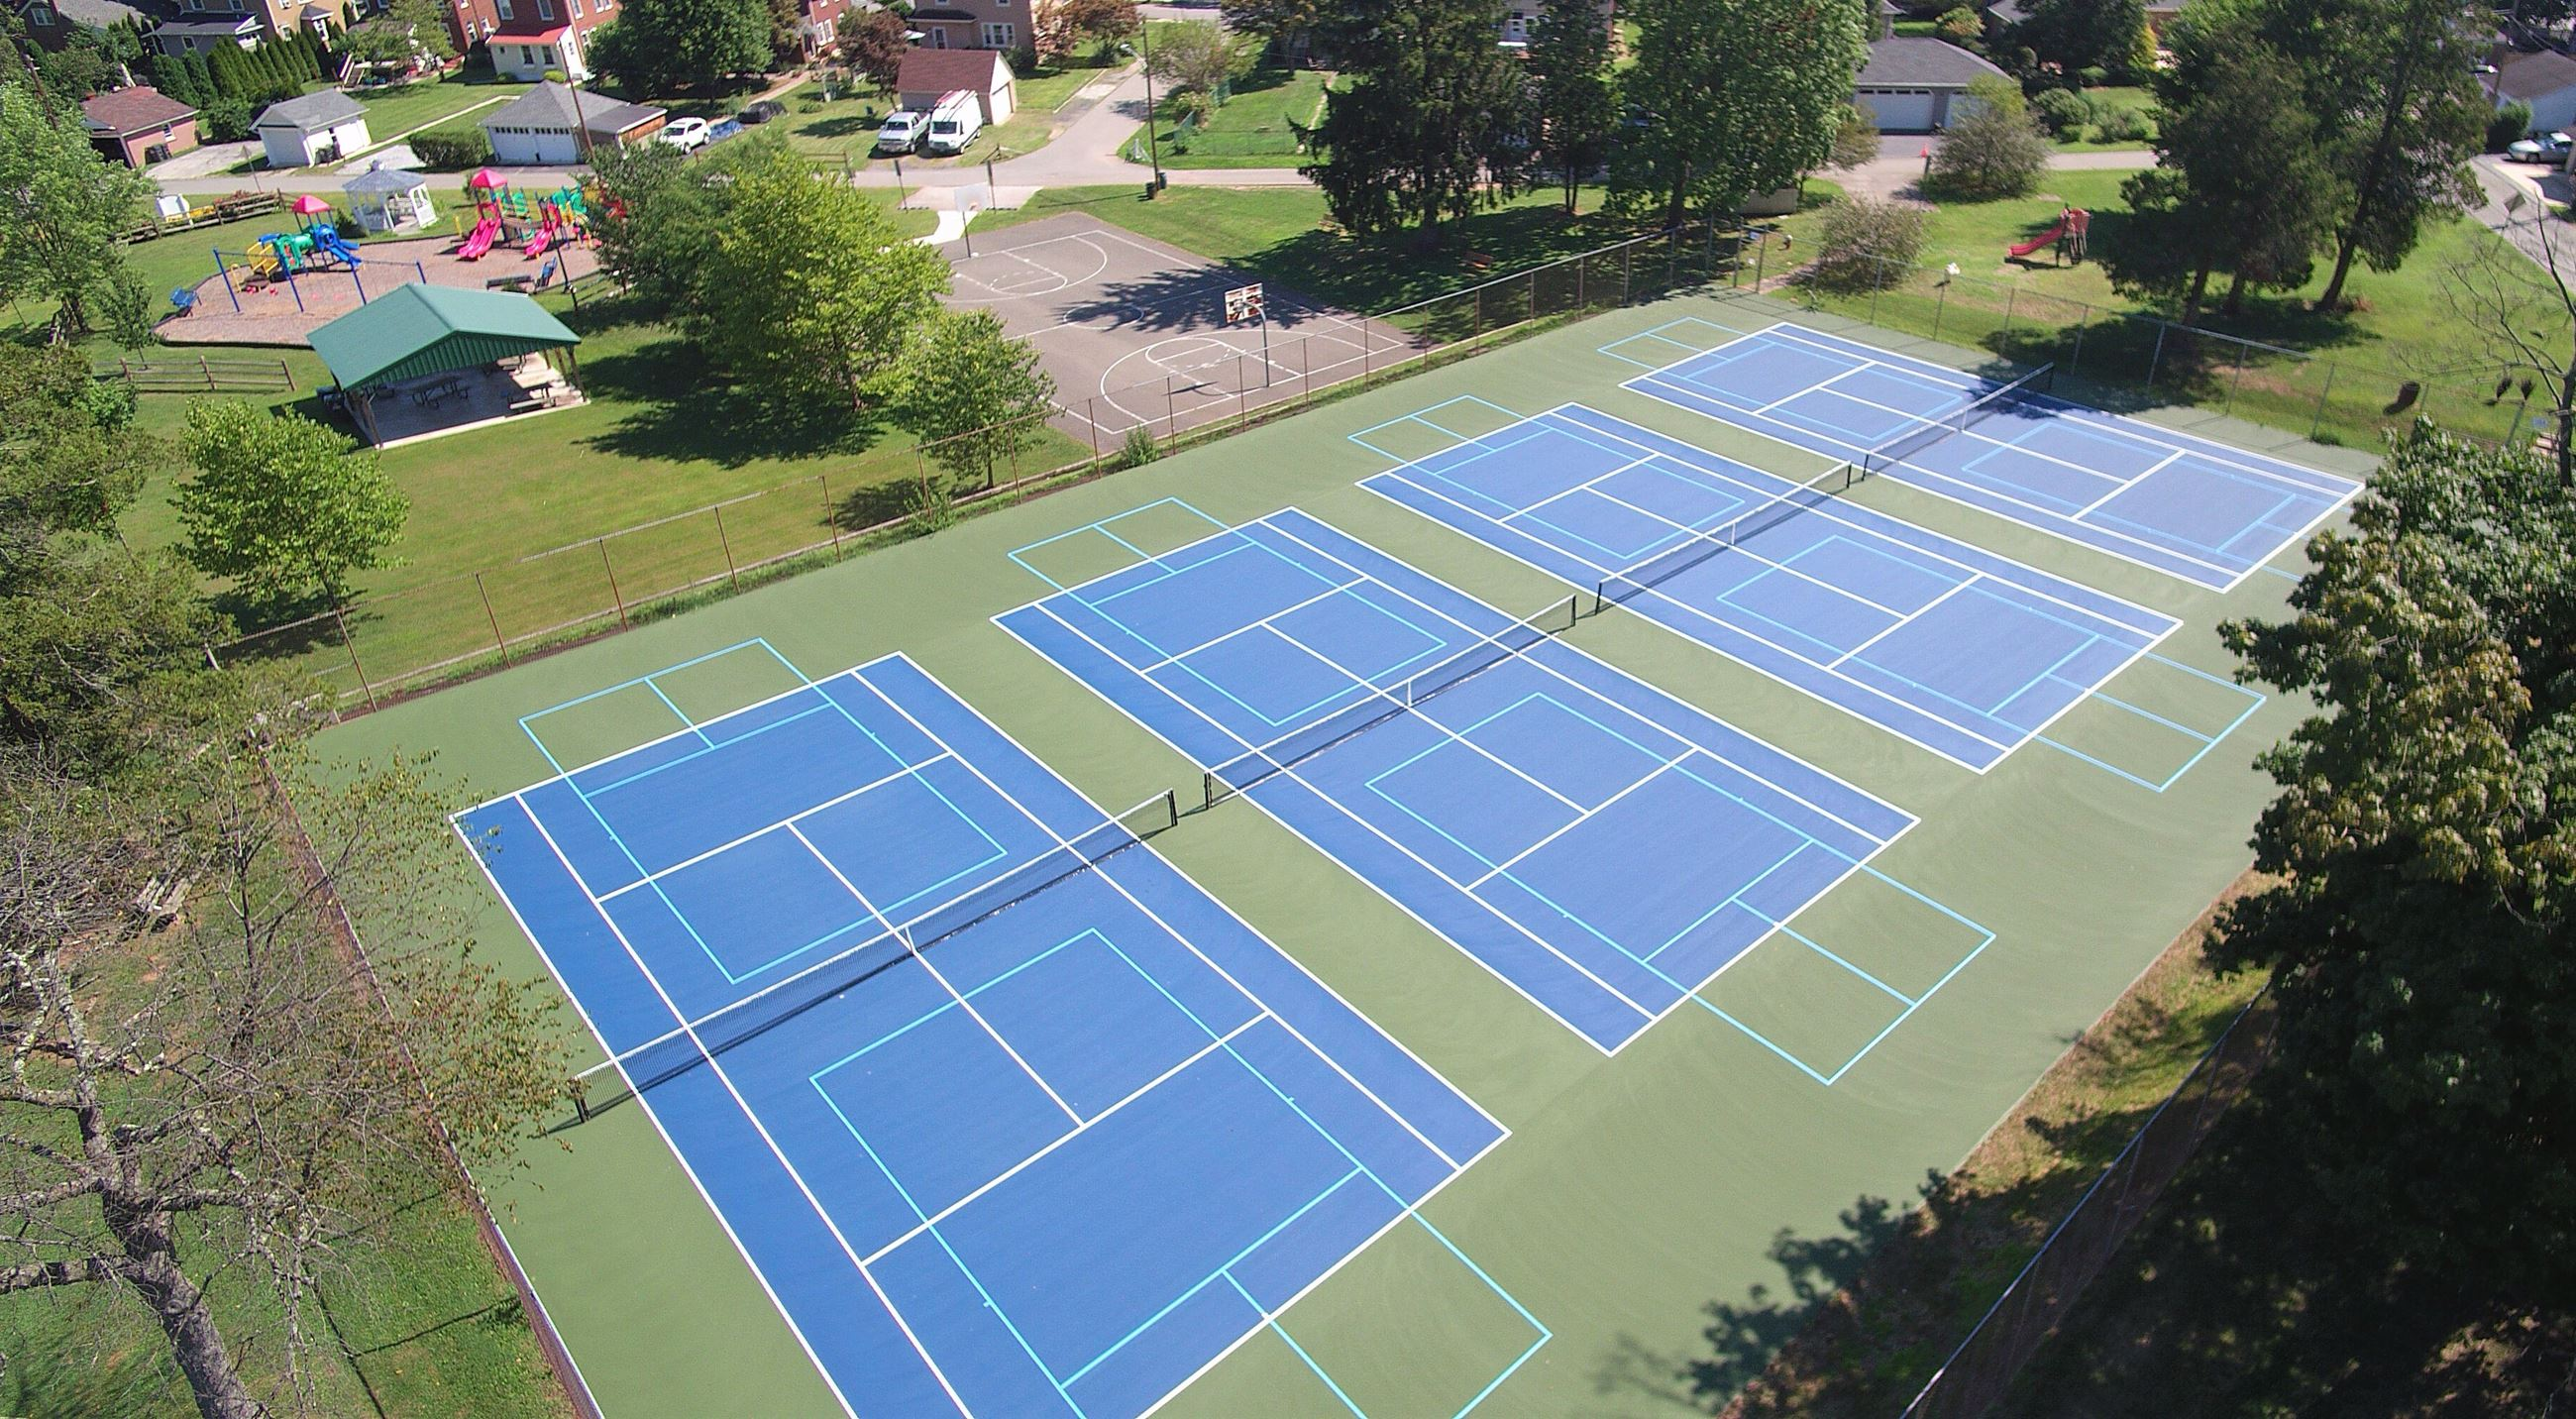 Fisher Park Tennis Courts (1)